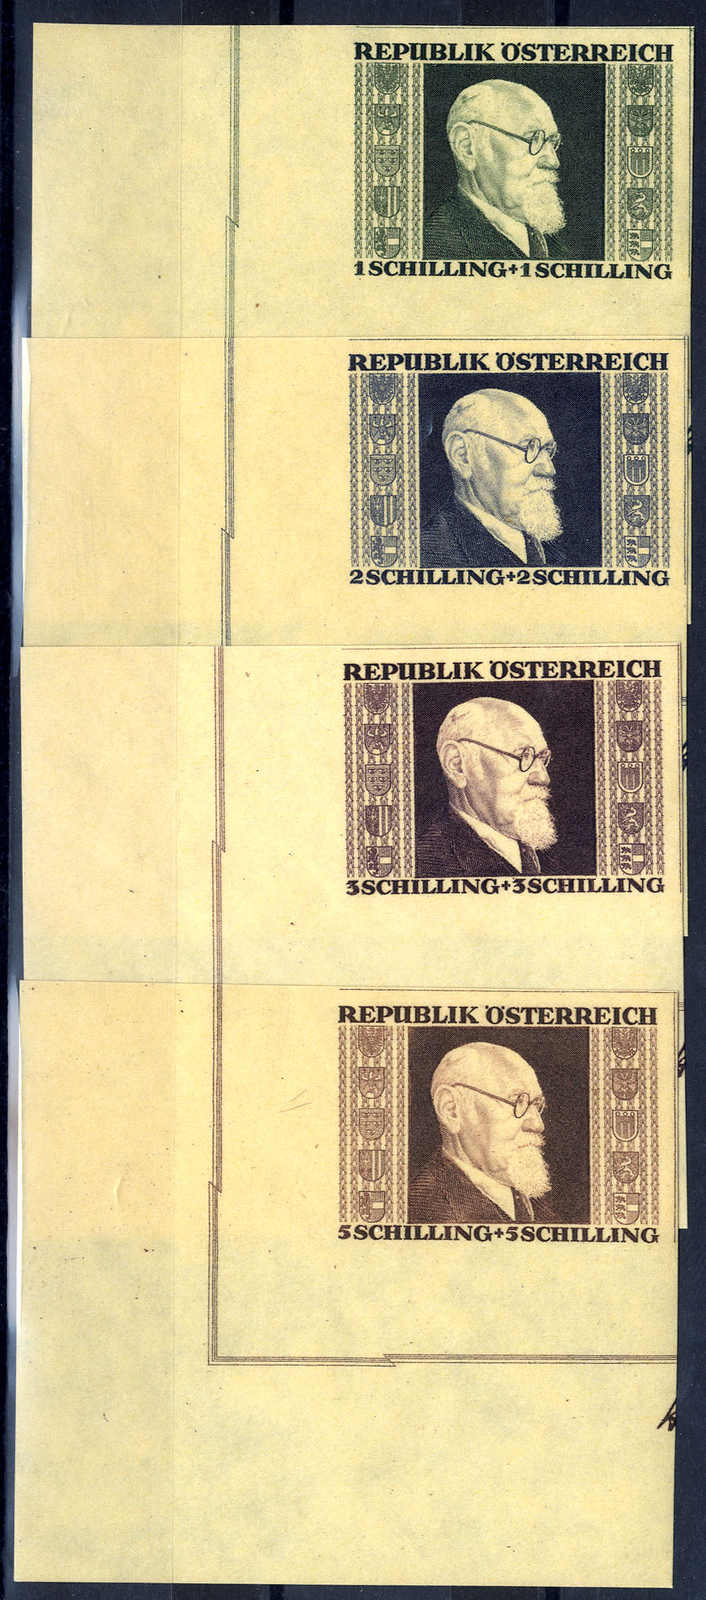 Lot 2414 - europe Austria 2nd. Republic -  Viennafil Auktionen 63rd LIVE AUCTION